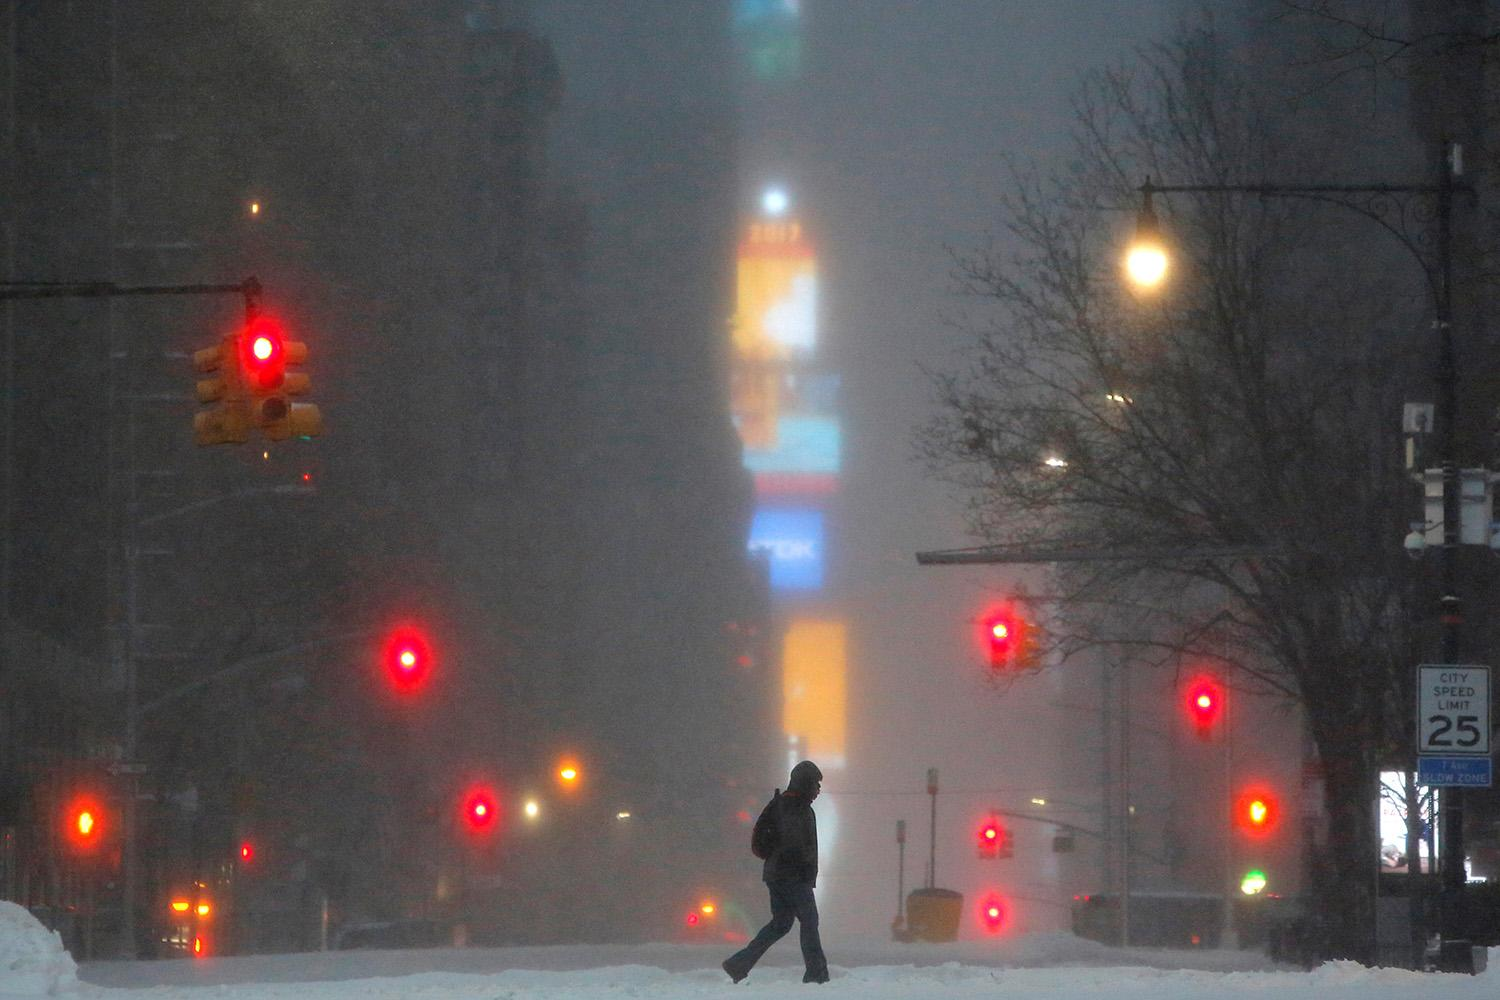 <p>Times Square is seen in the background as a man walks along West 59th street during a snow storm in New York, March 14, 2017. (Andrew Kelly/Reuters) </p>